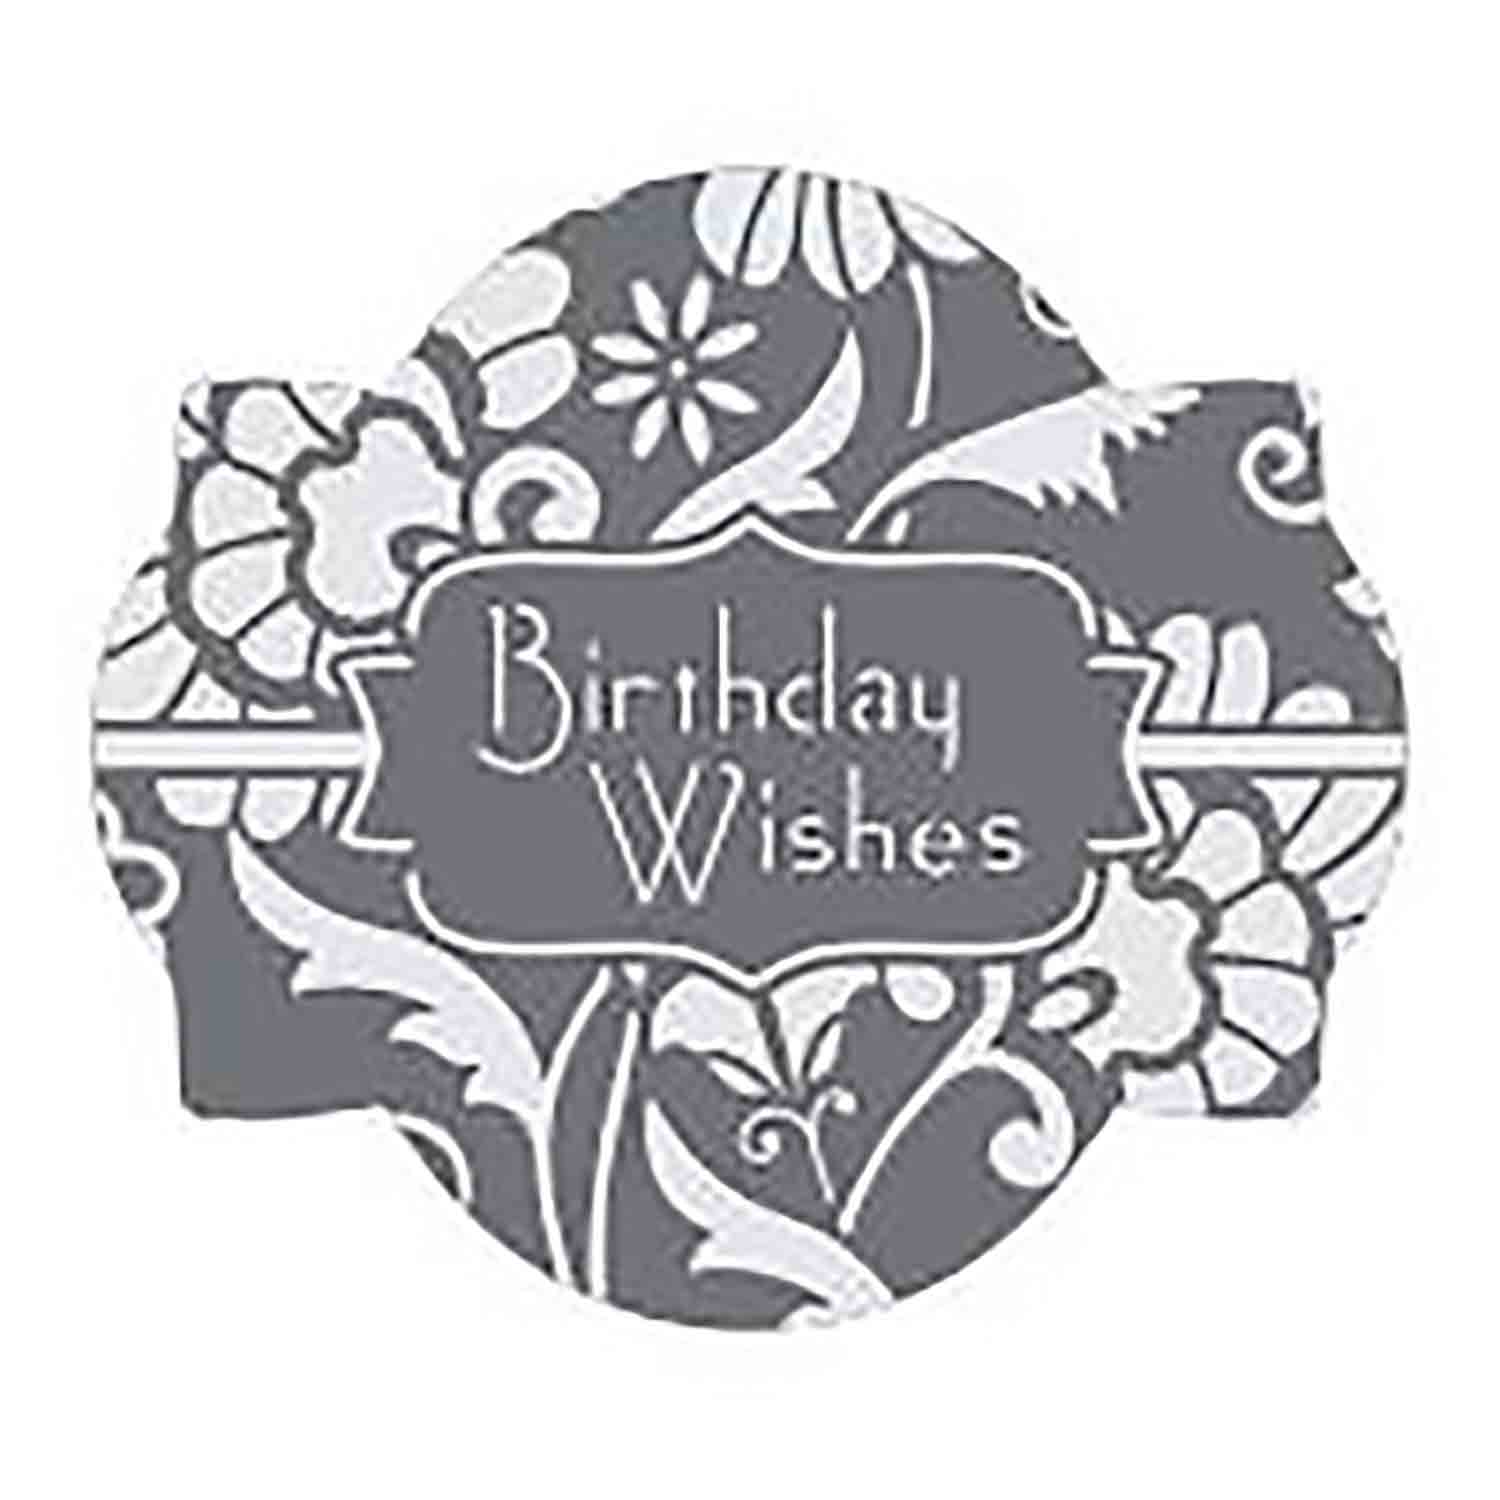 Birthday Wishes Cookie Stencil Set by Julia M Usher